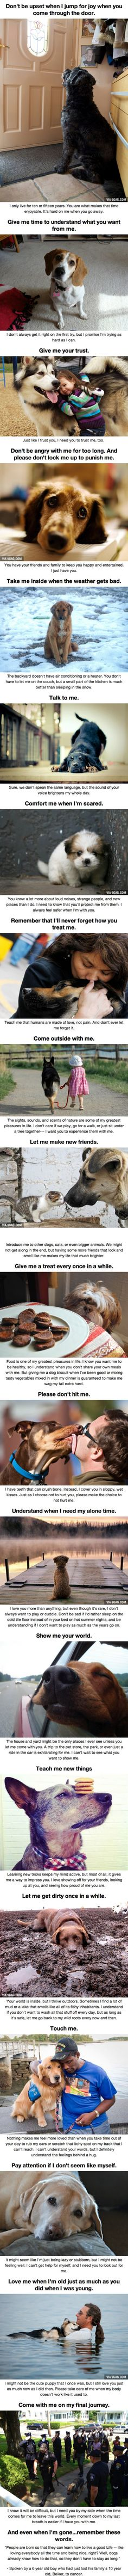 The 20 Important Facts Dog Lovers Must Never Forget...literally teared up on this one